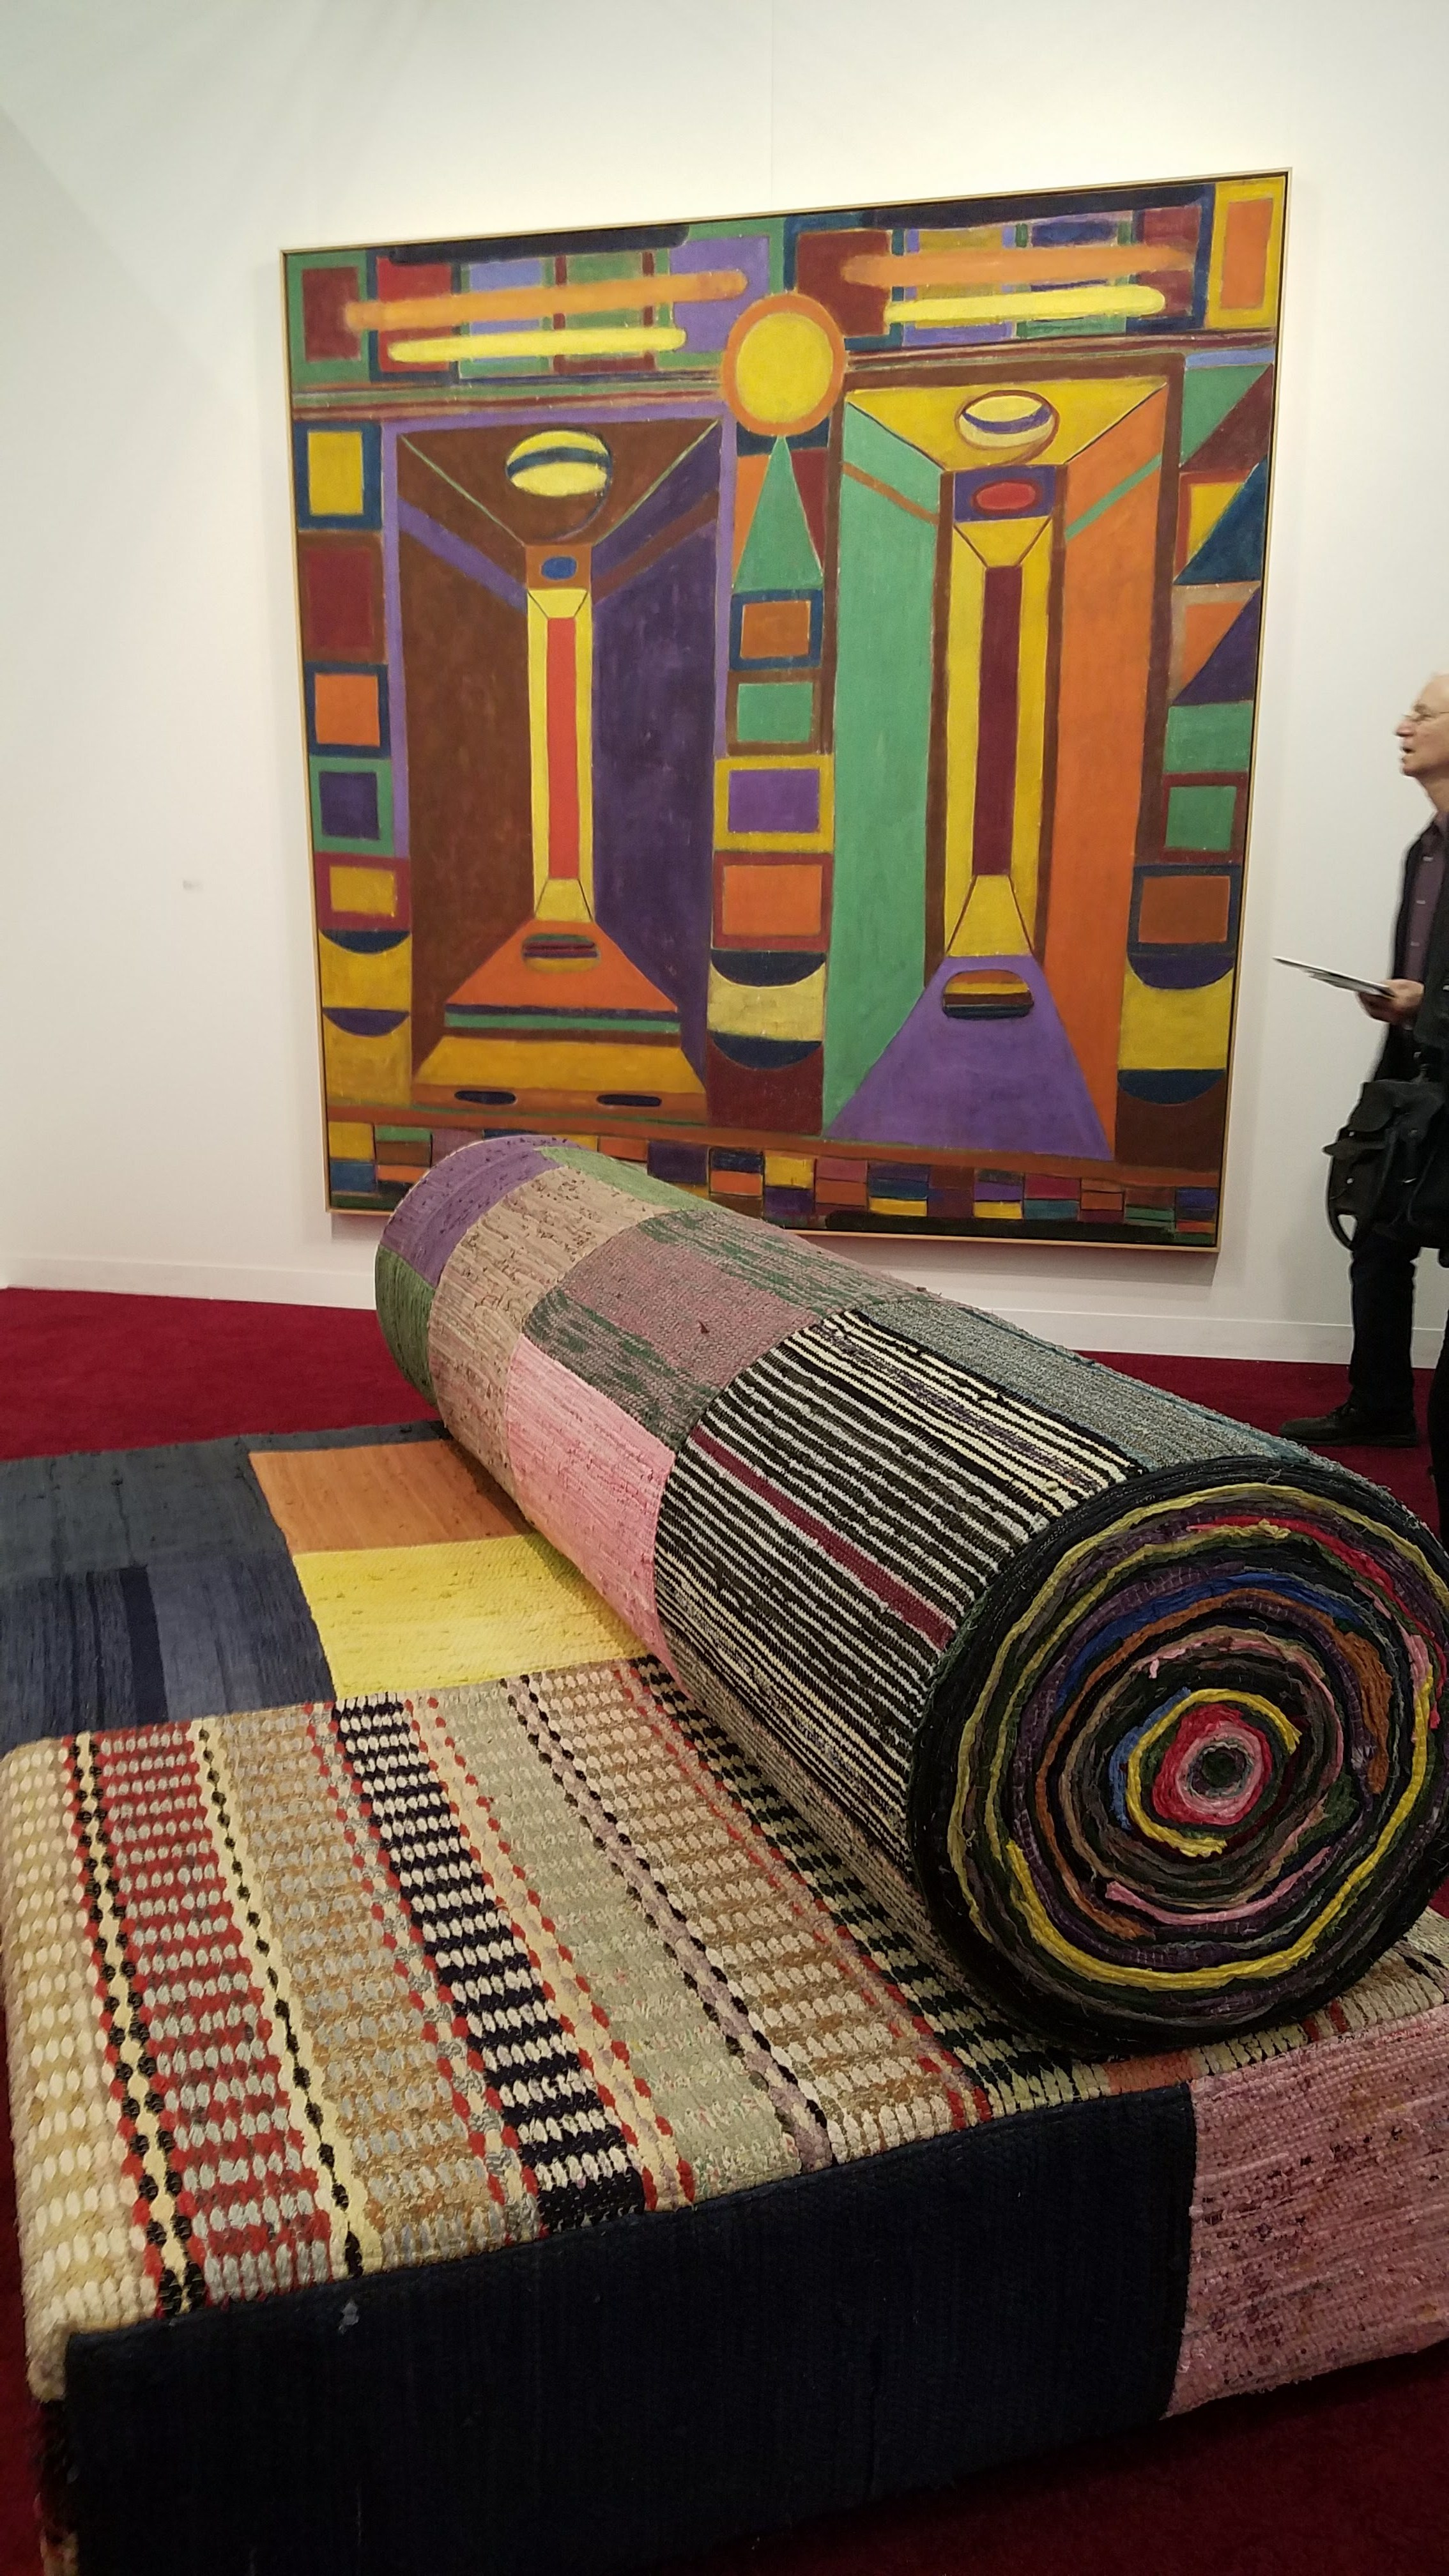 Tal R, Retired Professor, 2014, Rag Rug on foam on wood and rope, Courtesy Victoria Miro Gallery